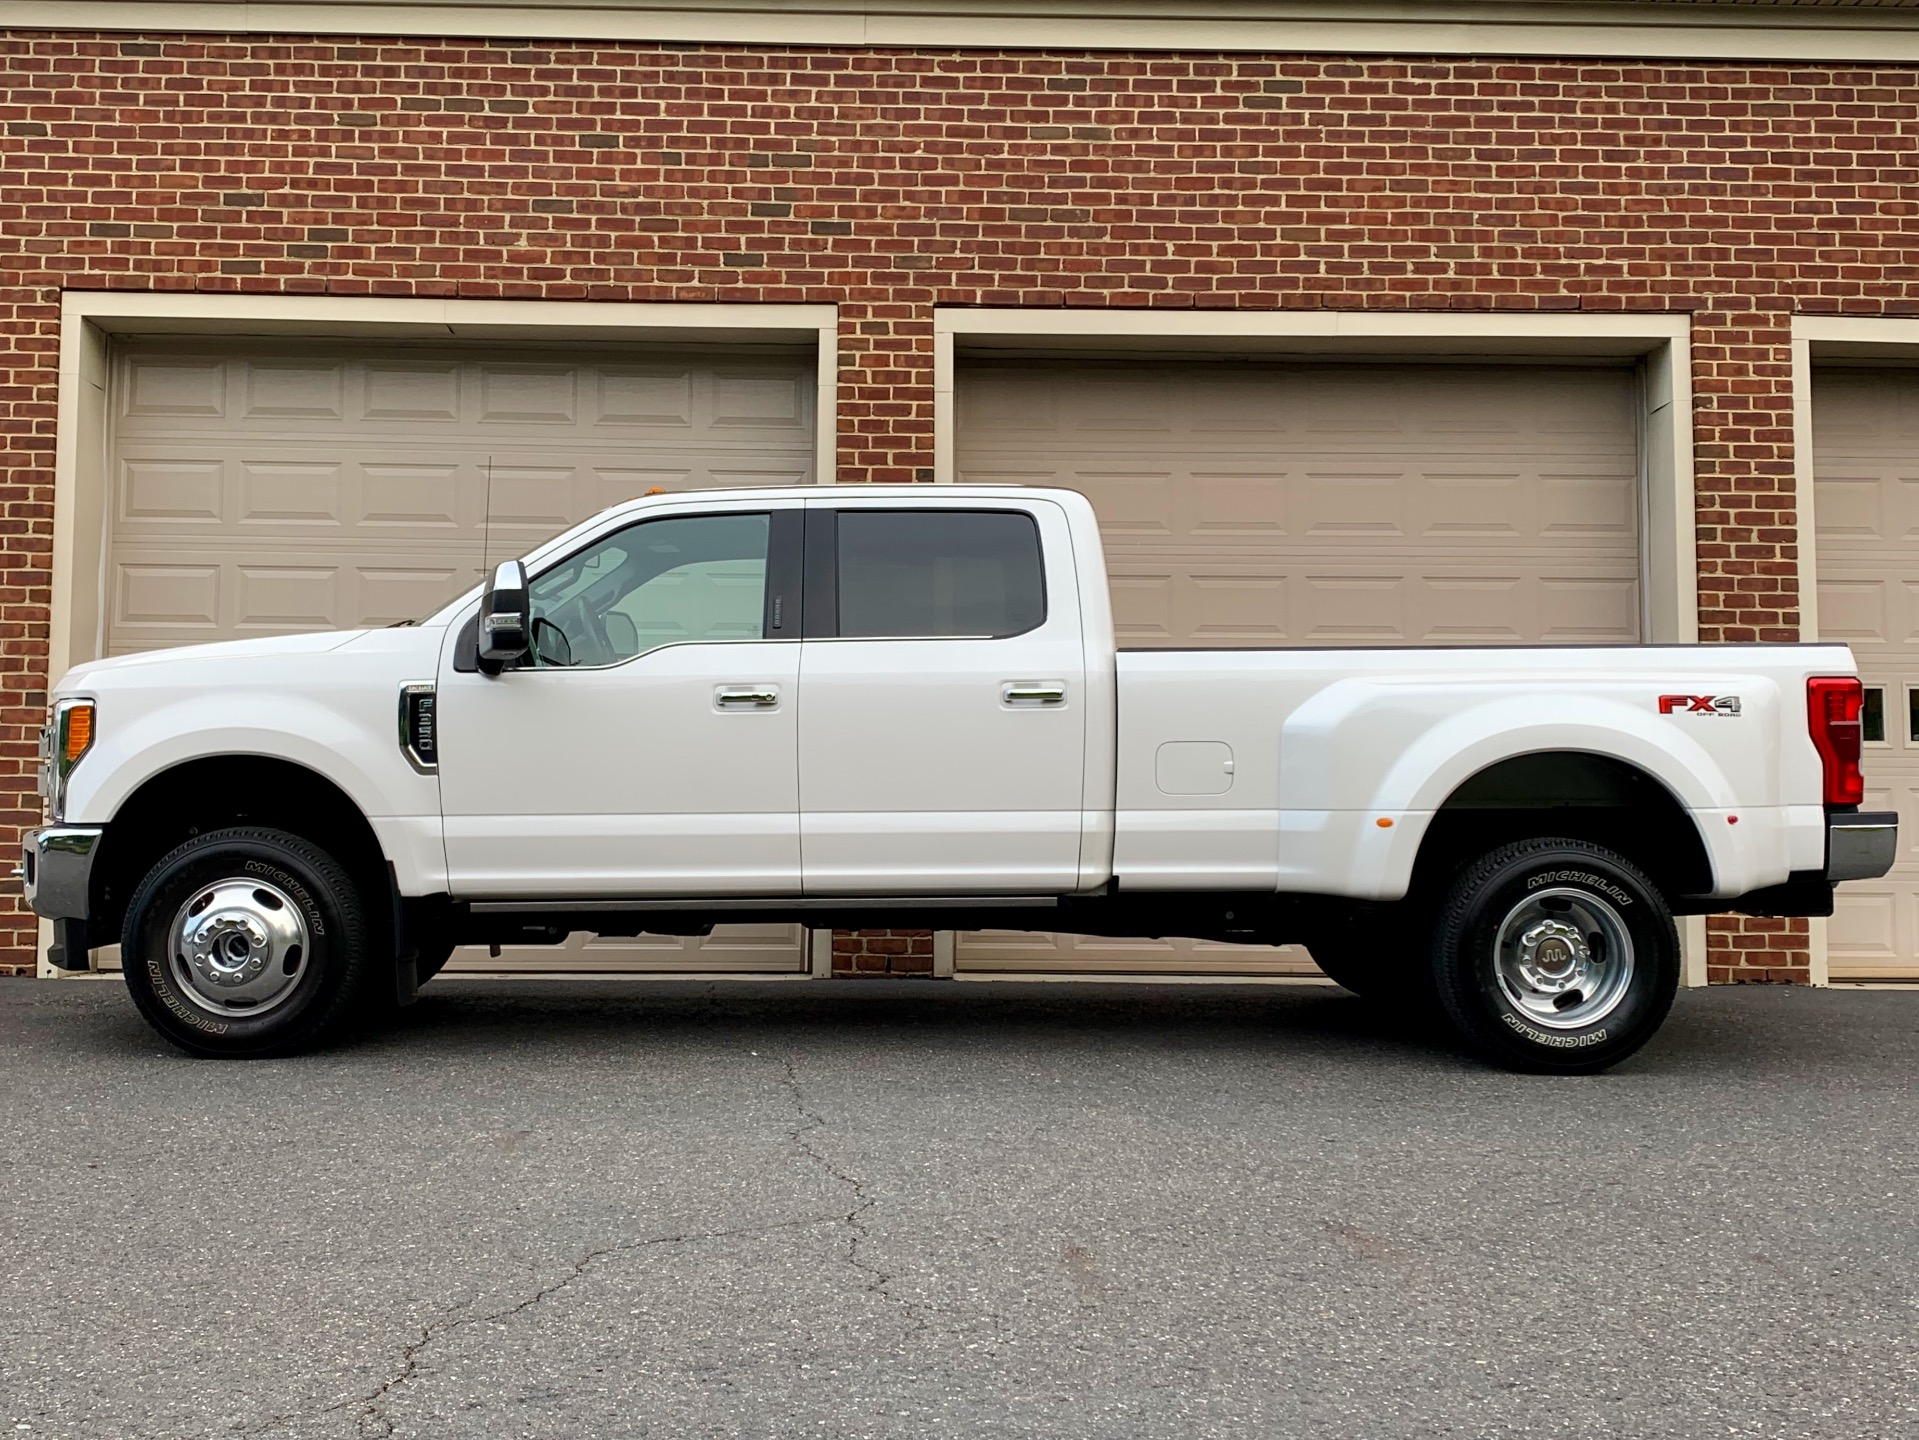 Used-2019-Ford-F-350-Super-Duty-King-Ranch-DRW